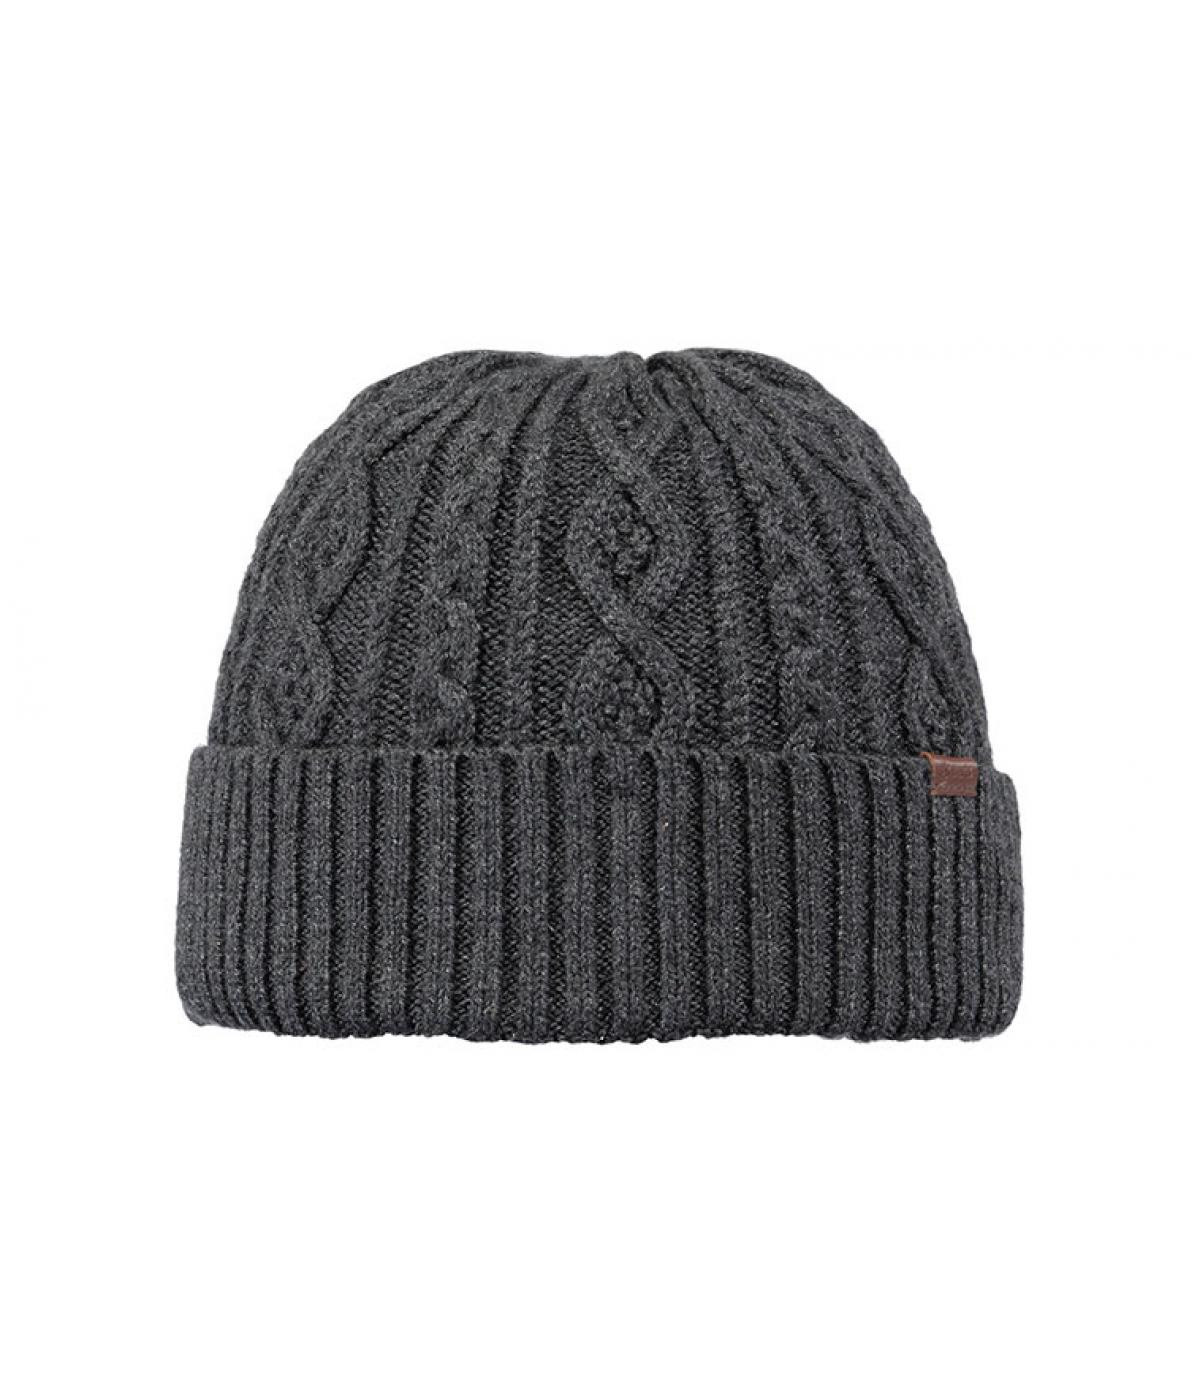 grey cuffed beanie cable knit